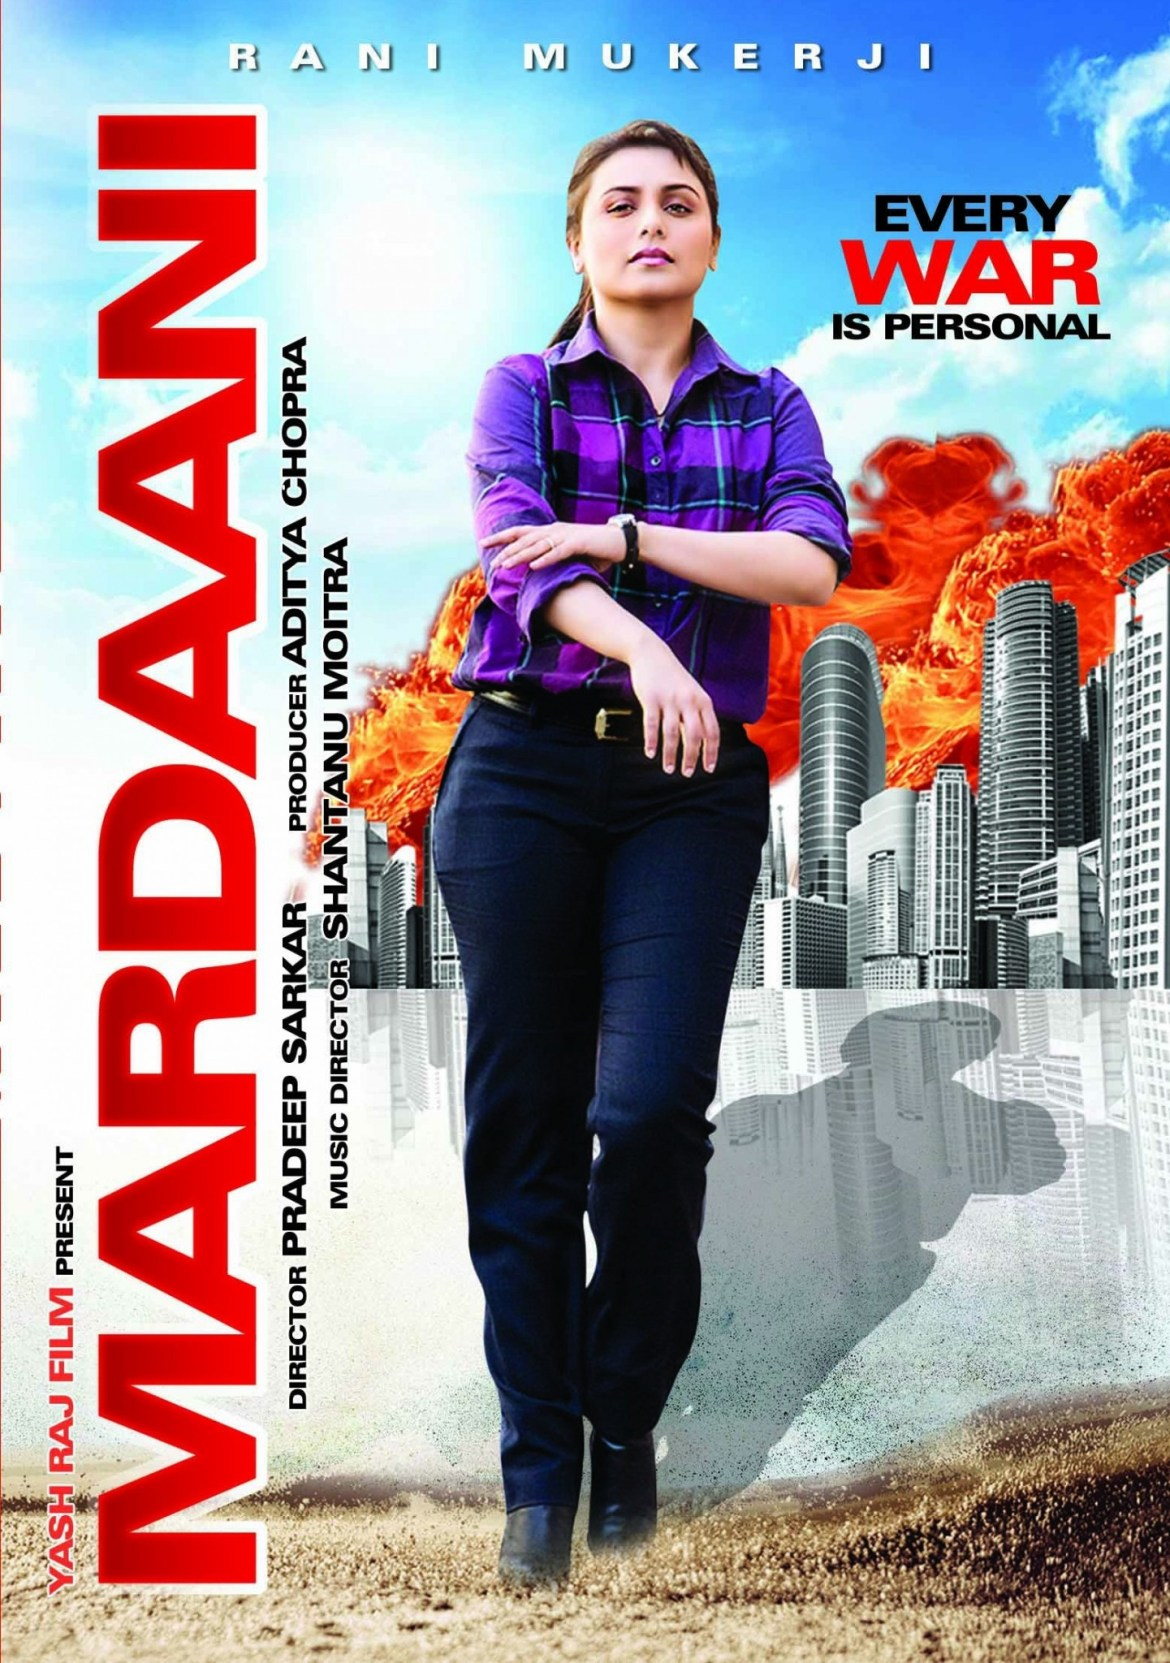 Mardaani Movie Poster Full HD Desktop Wallpaper Rani Mukerji